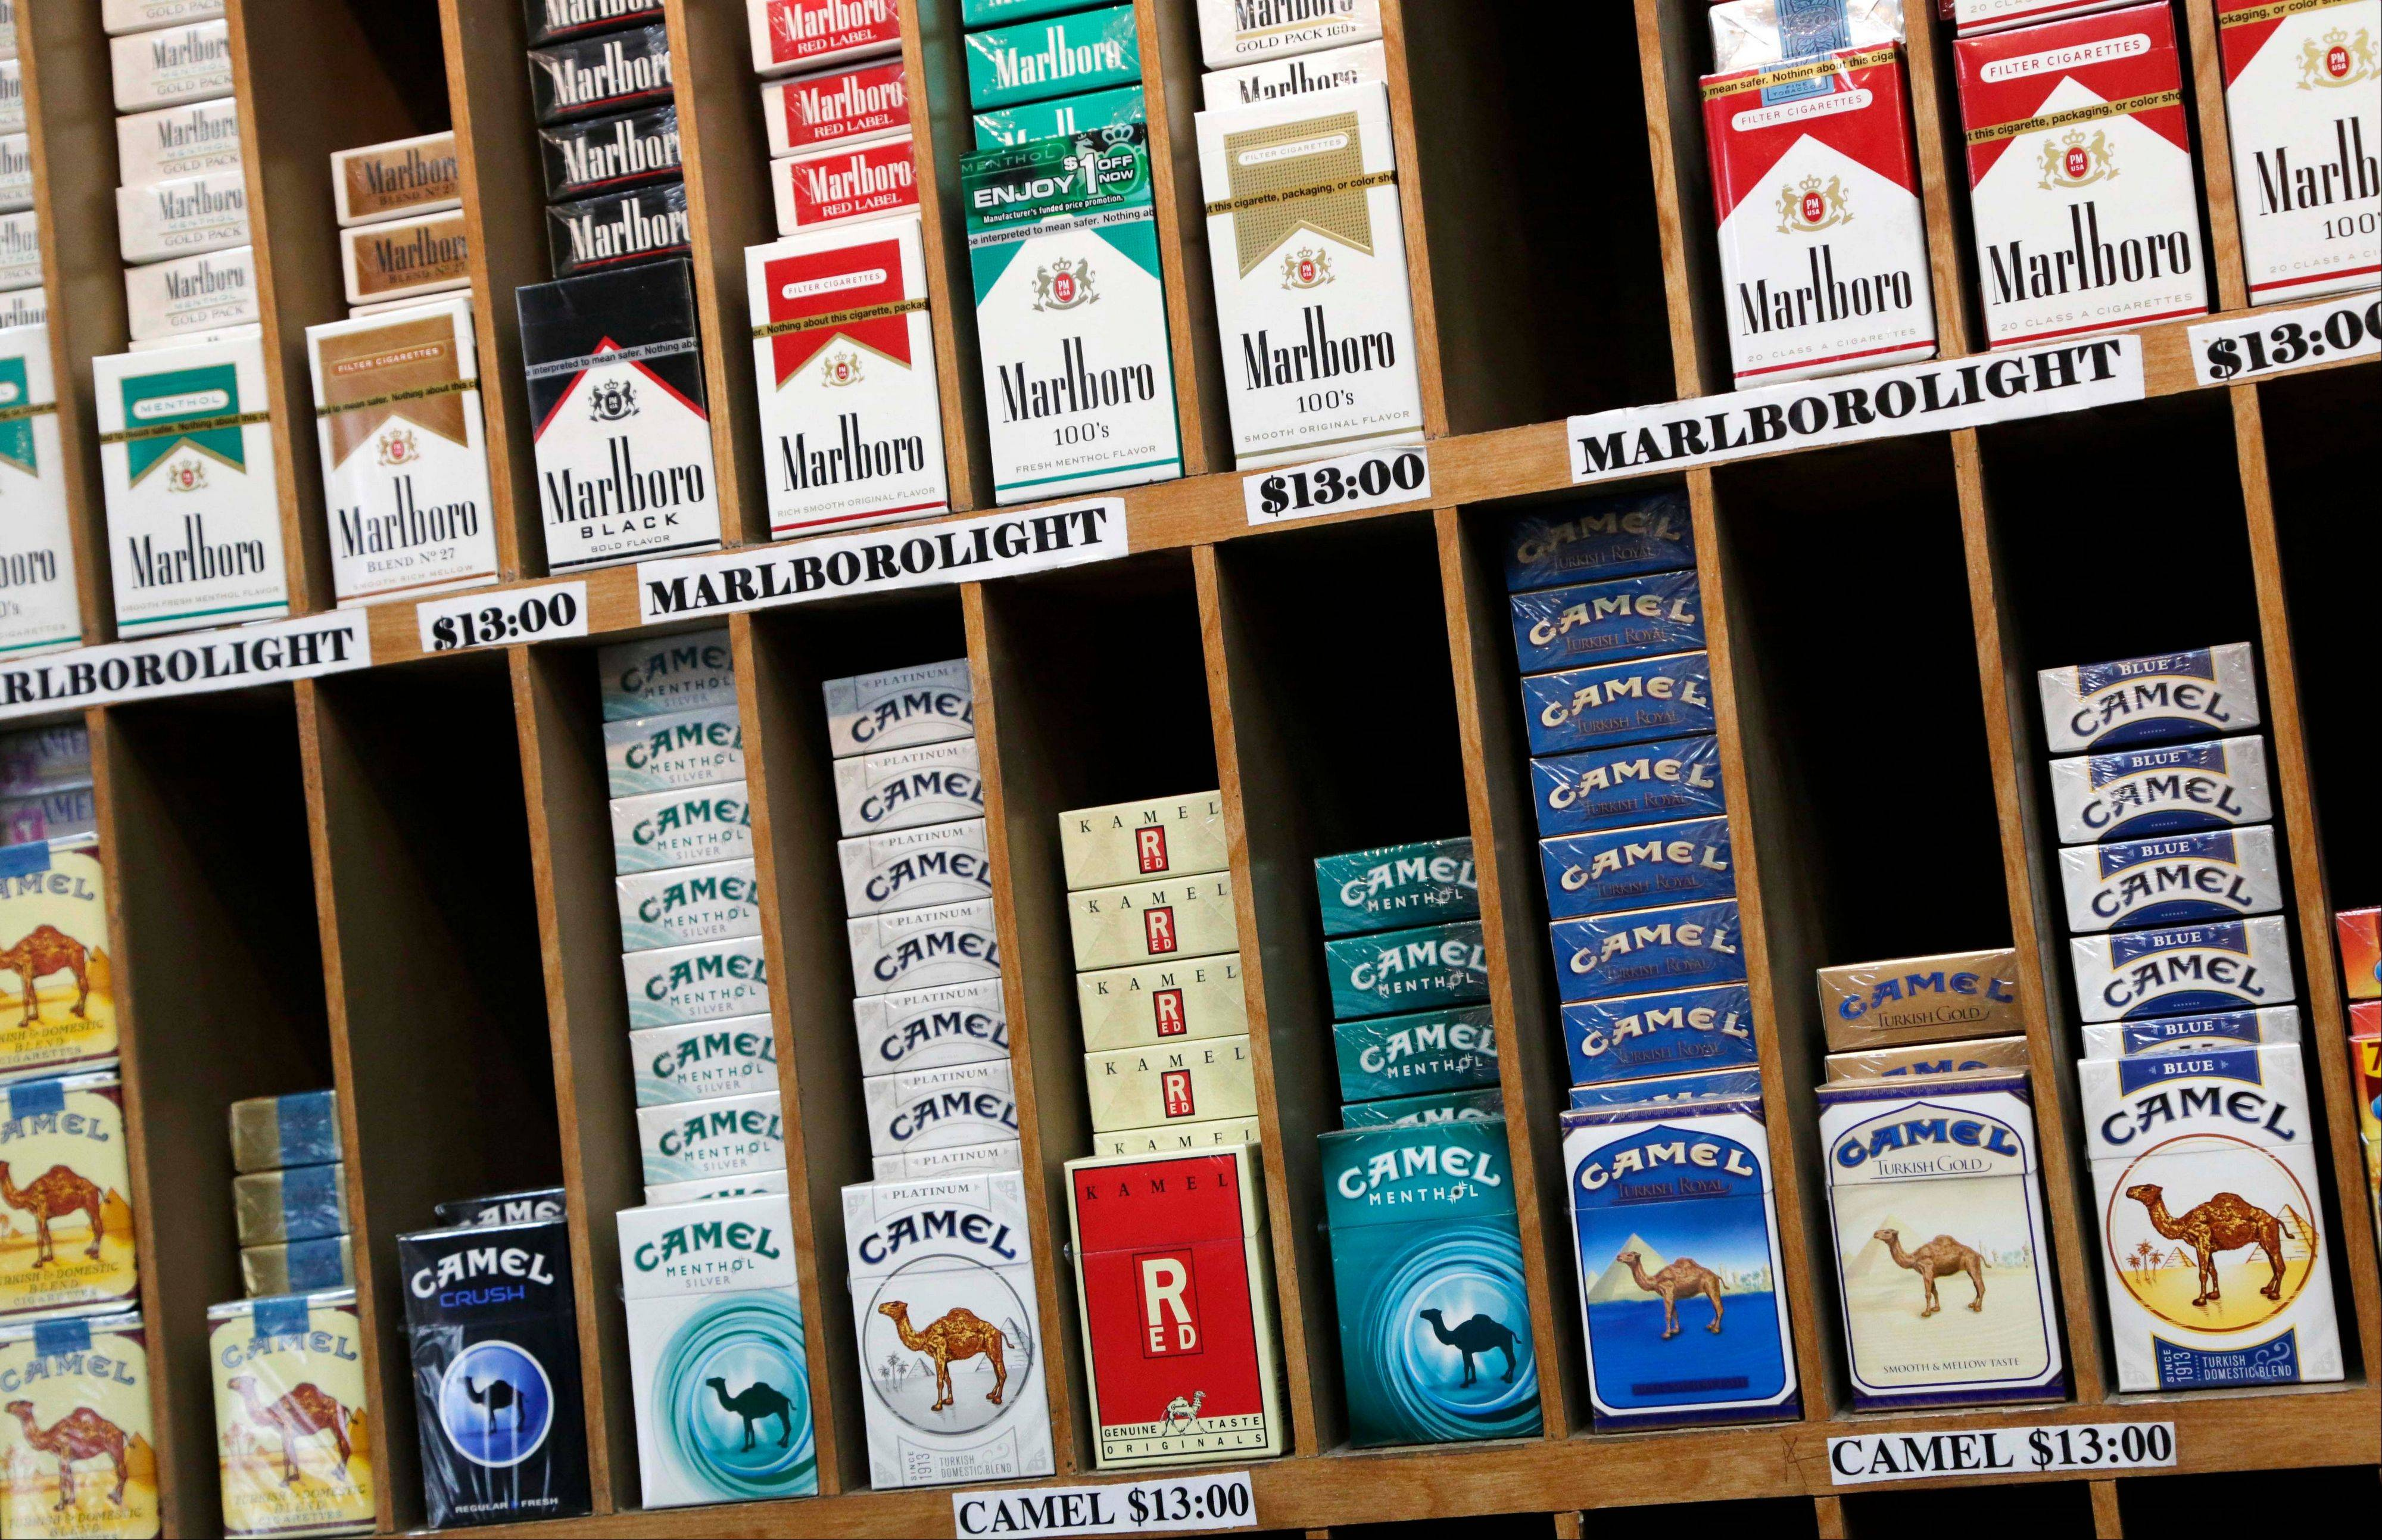 On Wednesday, Oct. 30, 2013, law makers in New York City voted to raise the cigarette-buying age from 18 to 21.